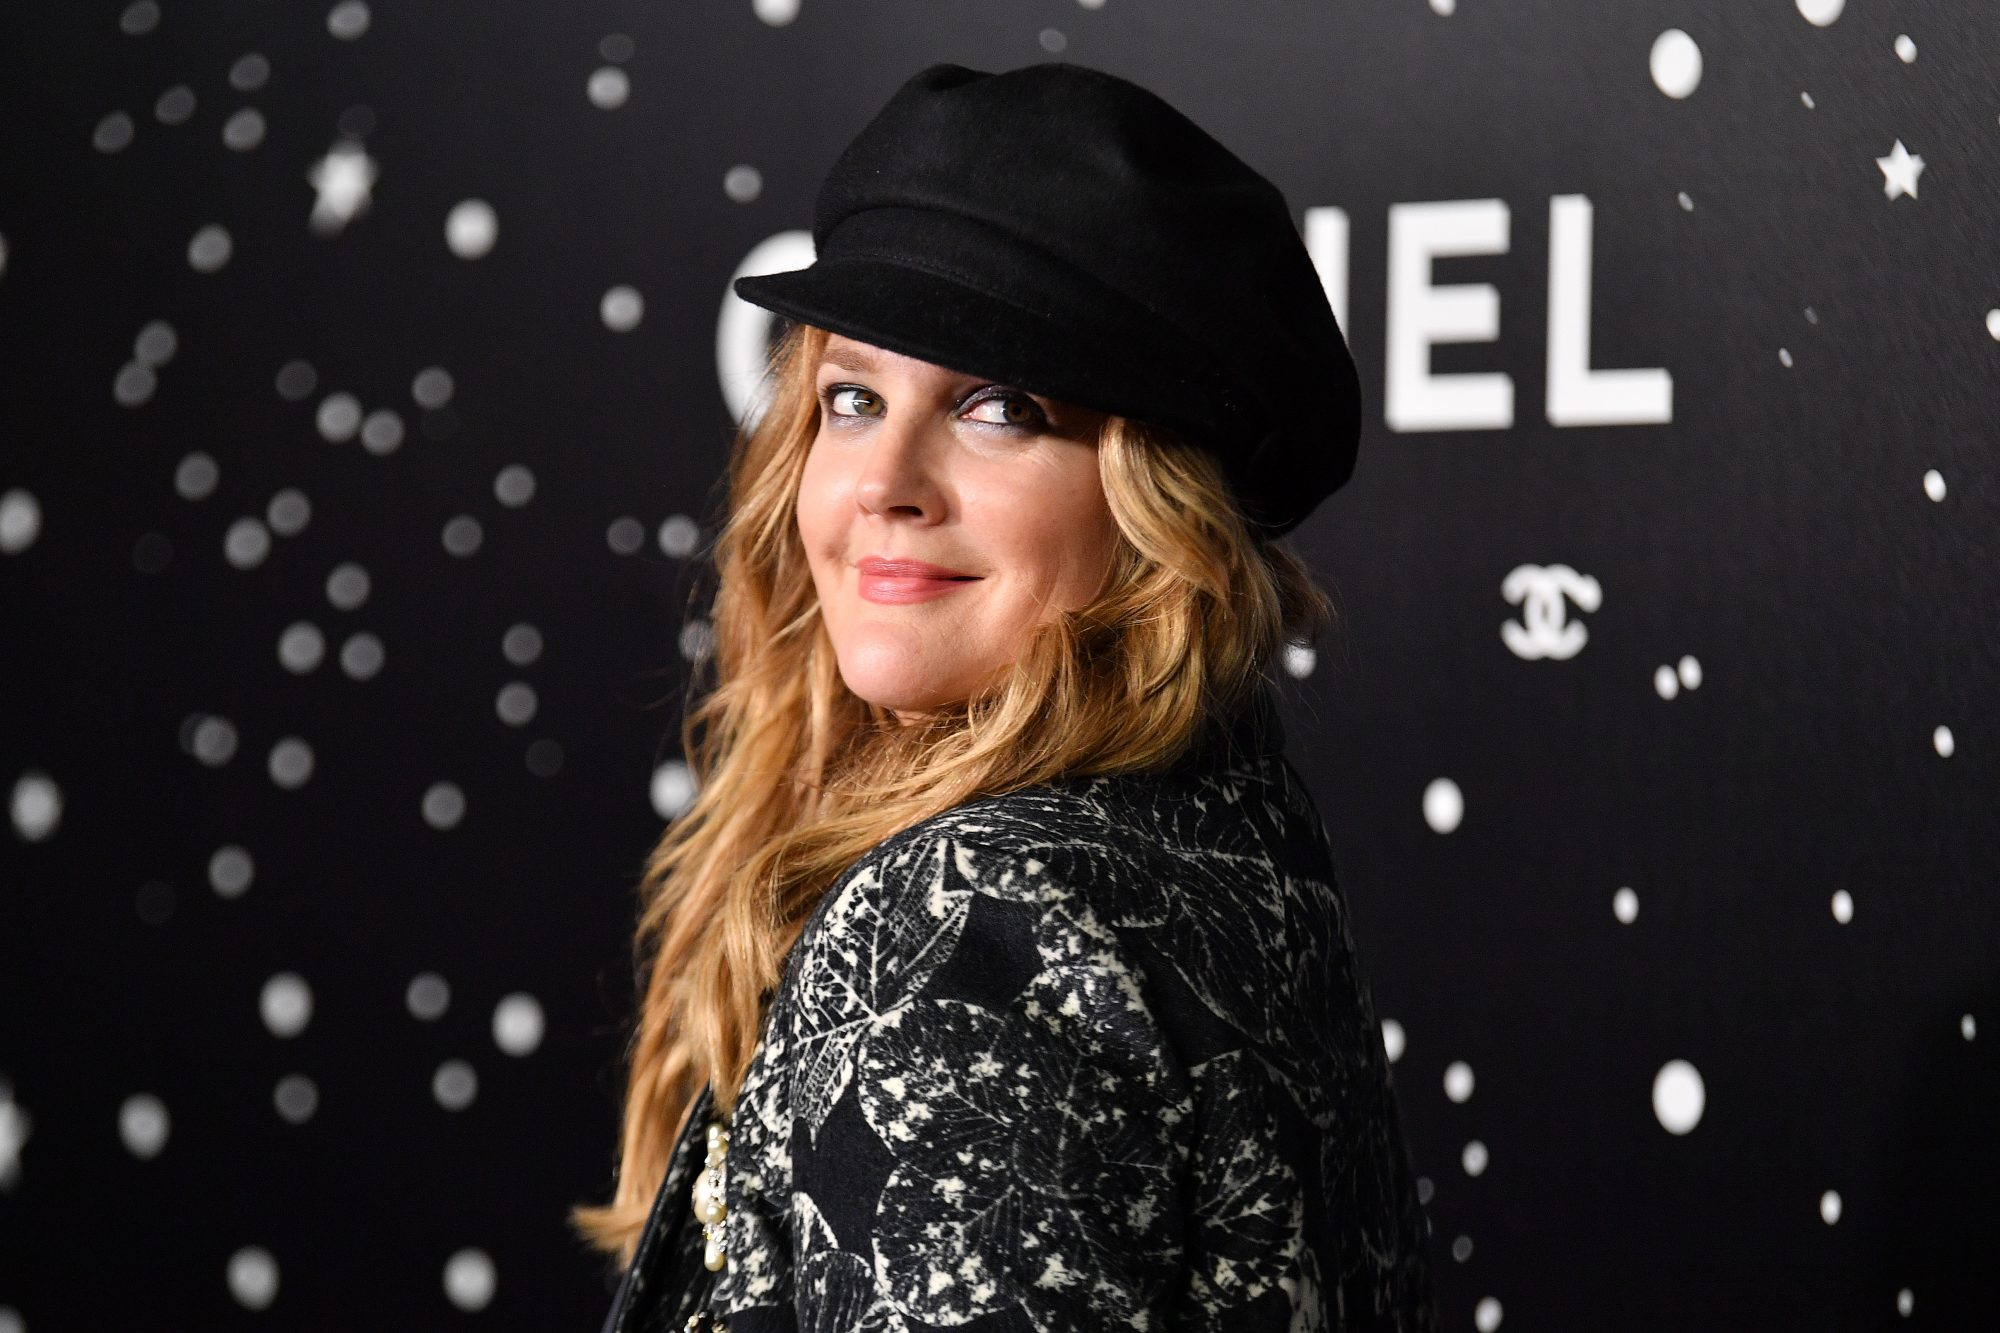 How to Shrink Pores According to Drew Barrymore